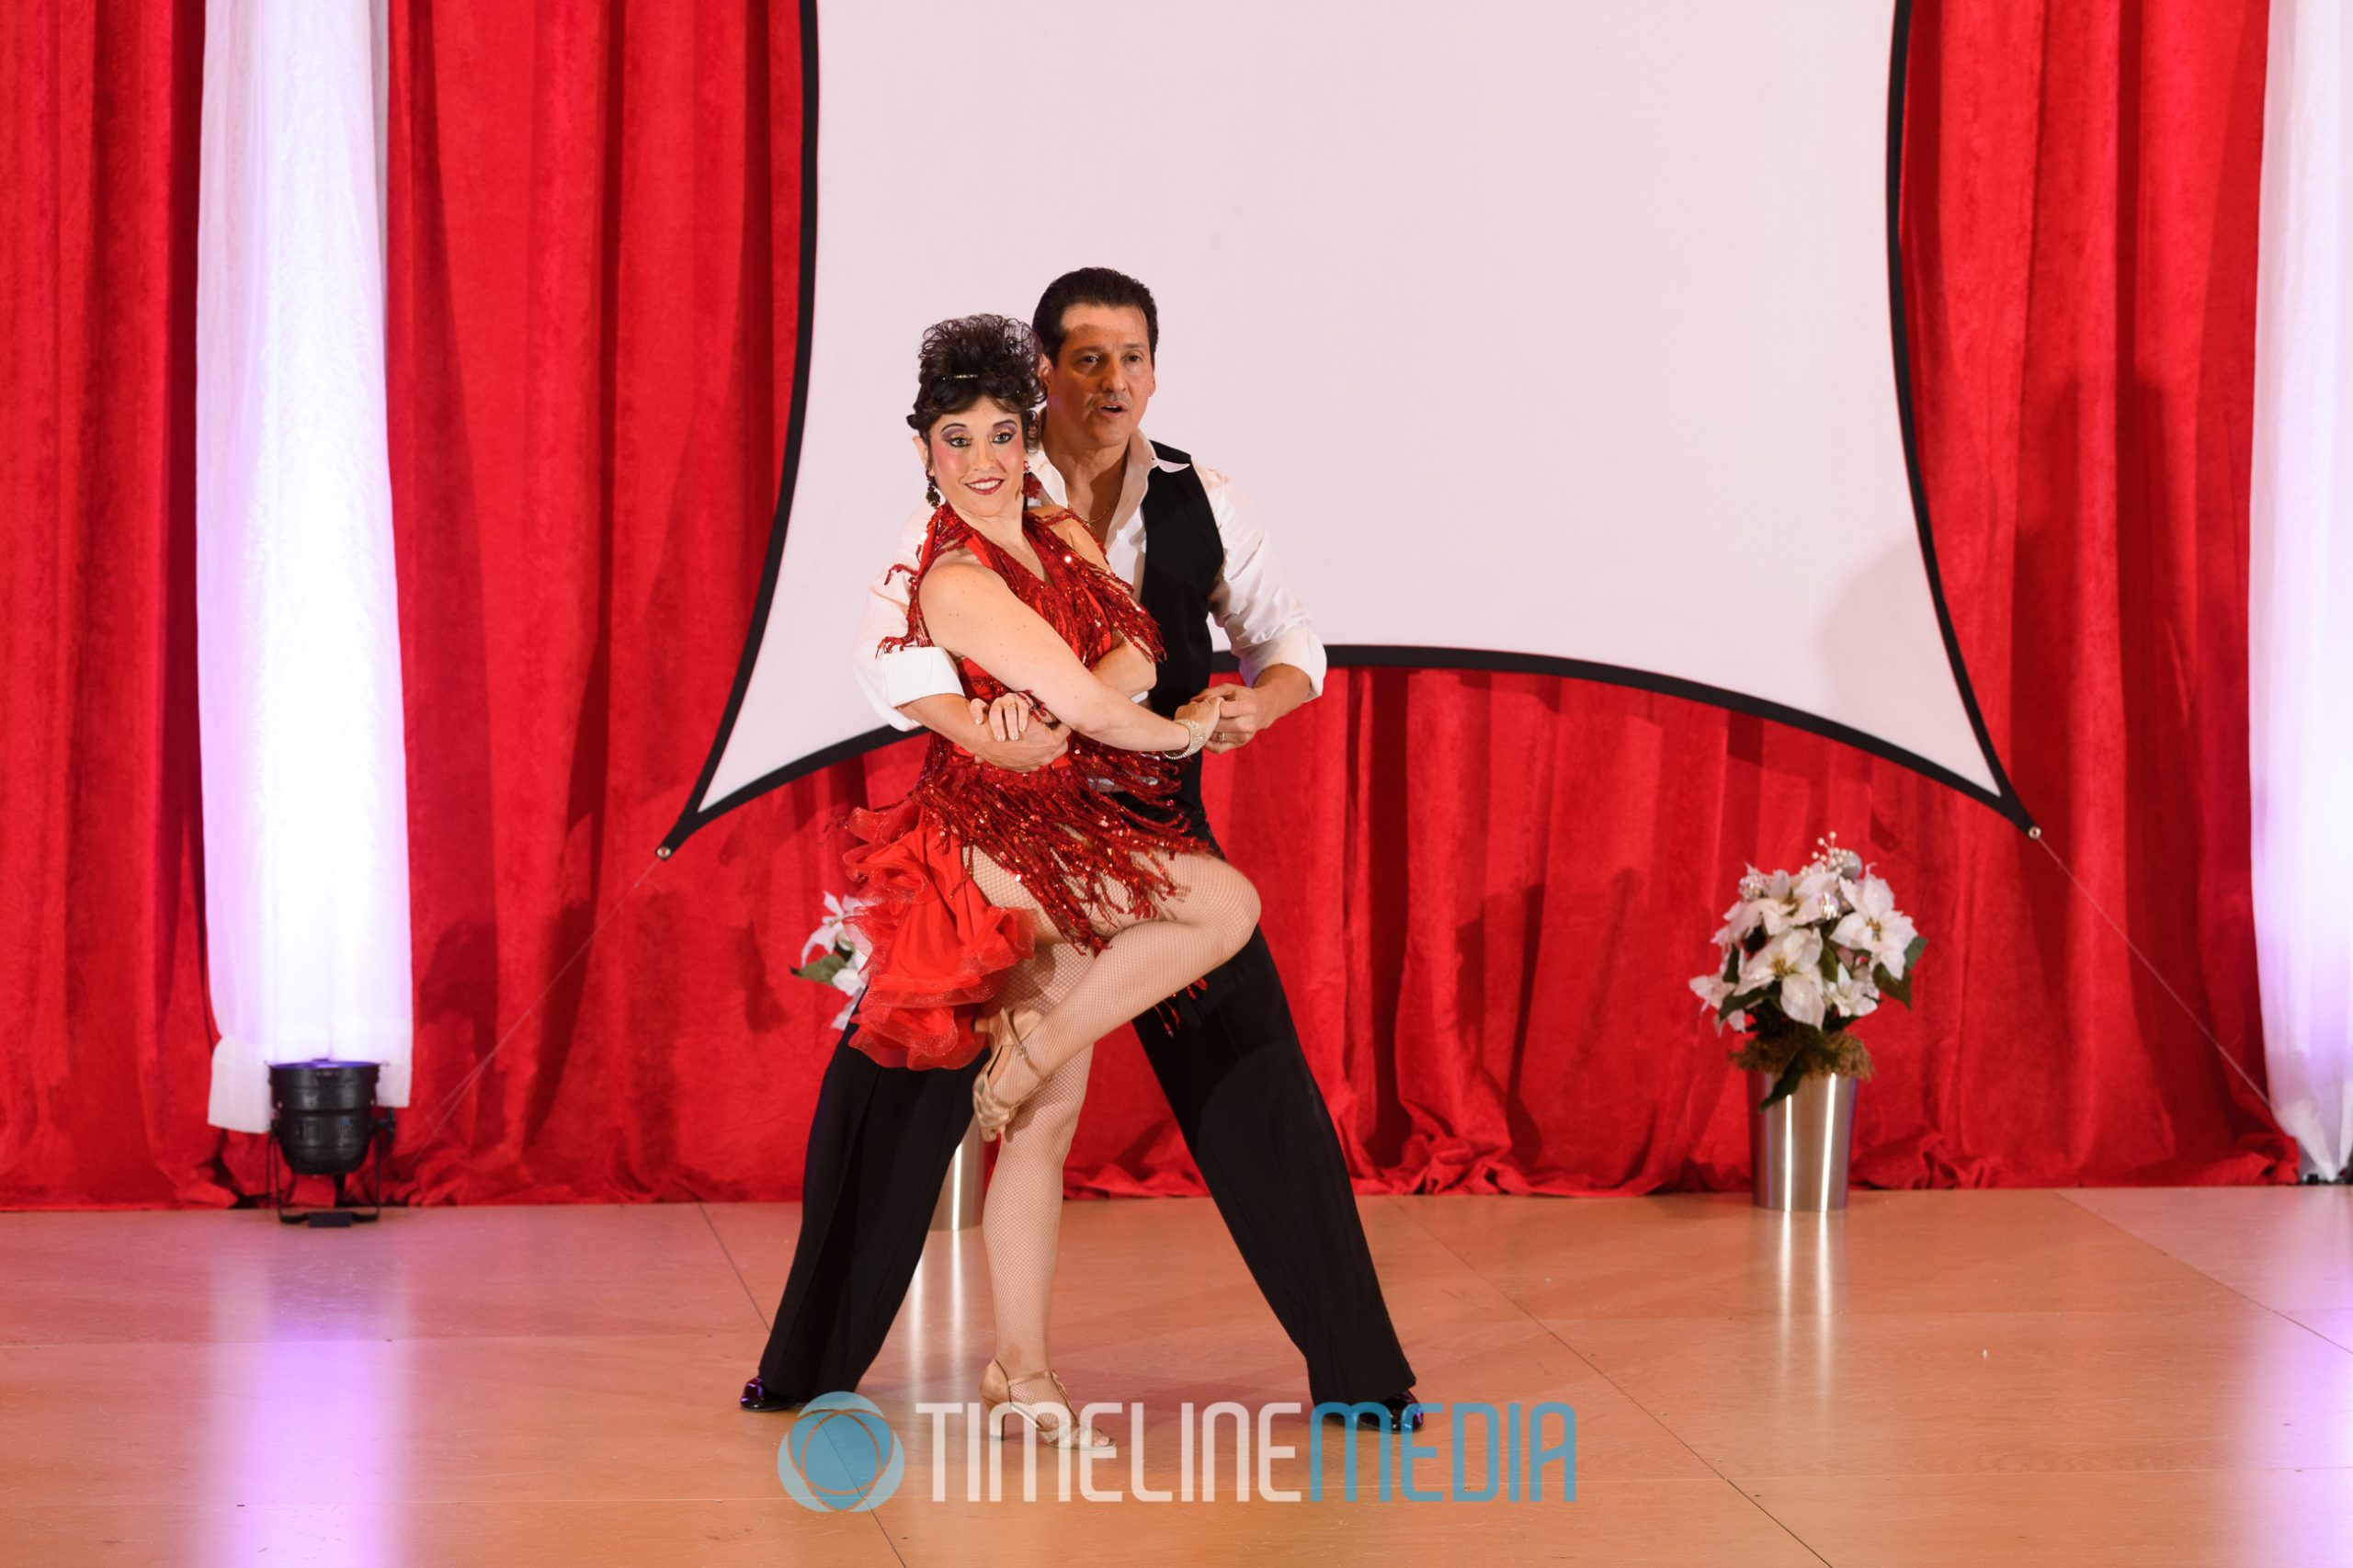 That's Dancing student showcases ©TimeLine Media